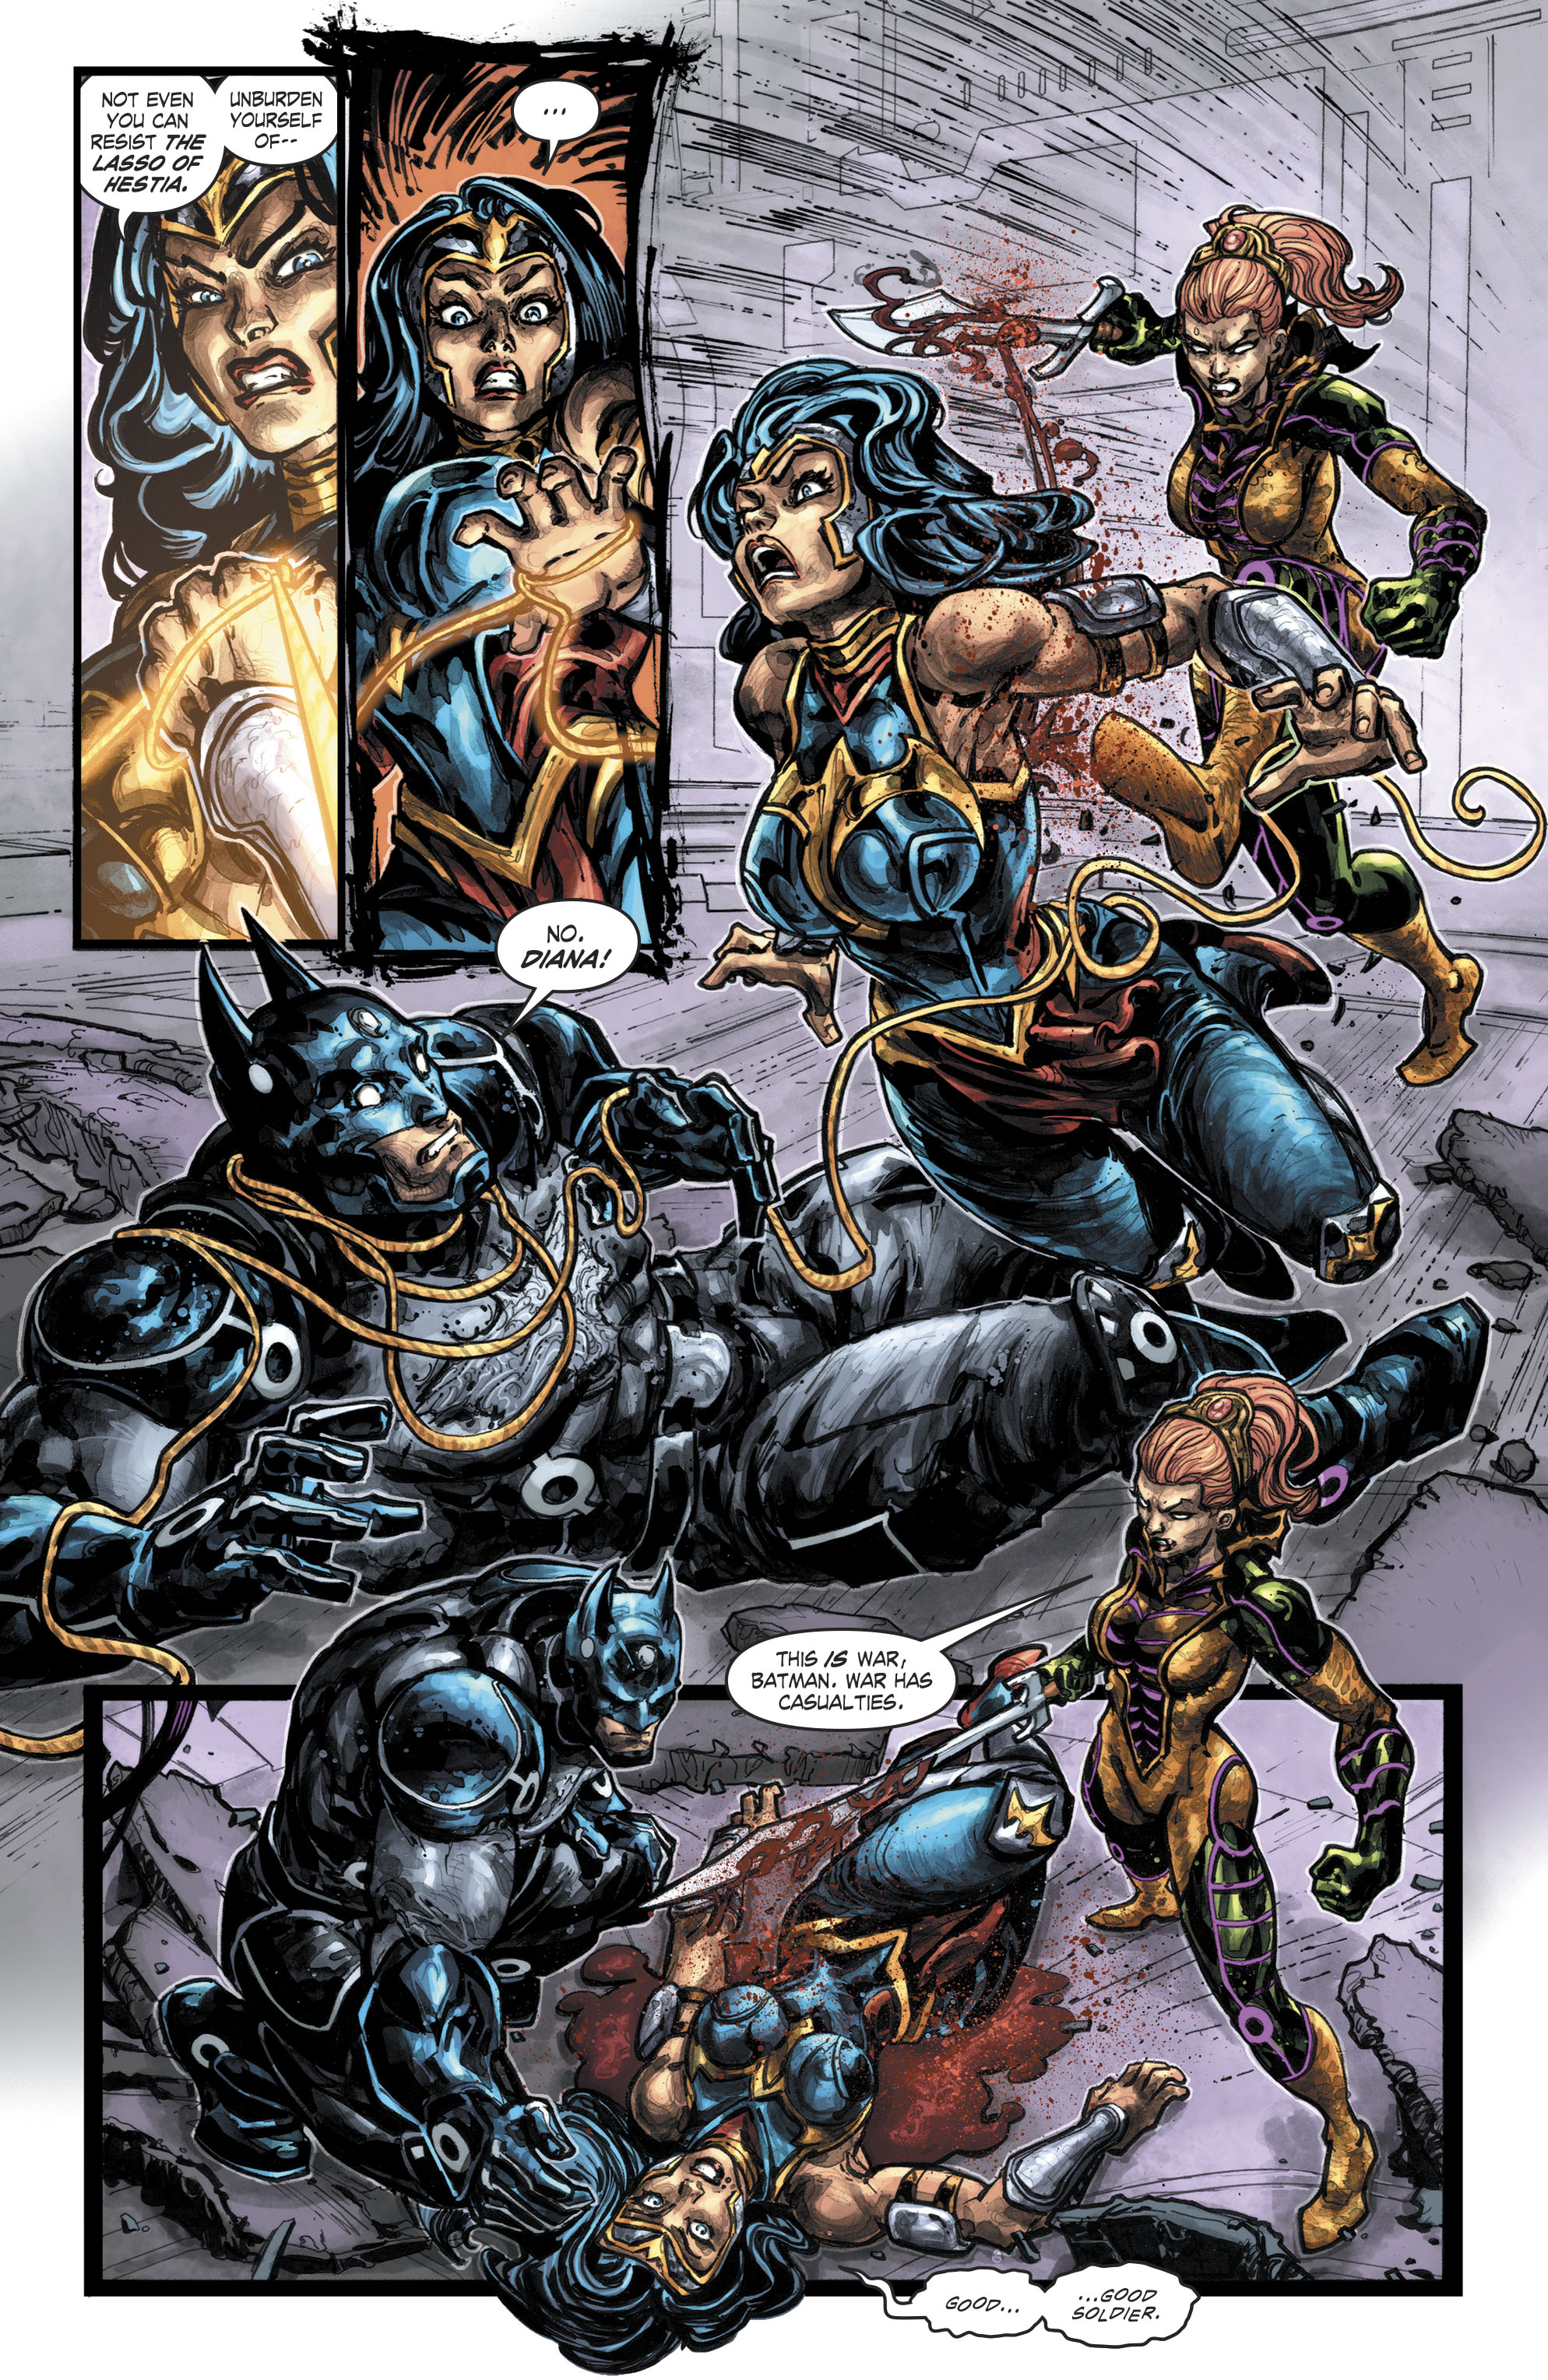 Injustice Vs Masters of the Universe 004 013